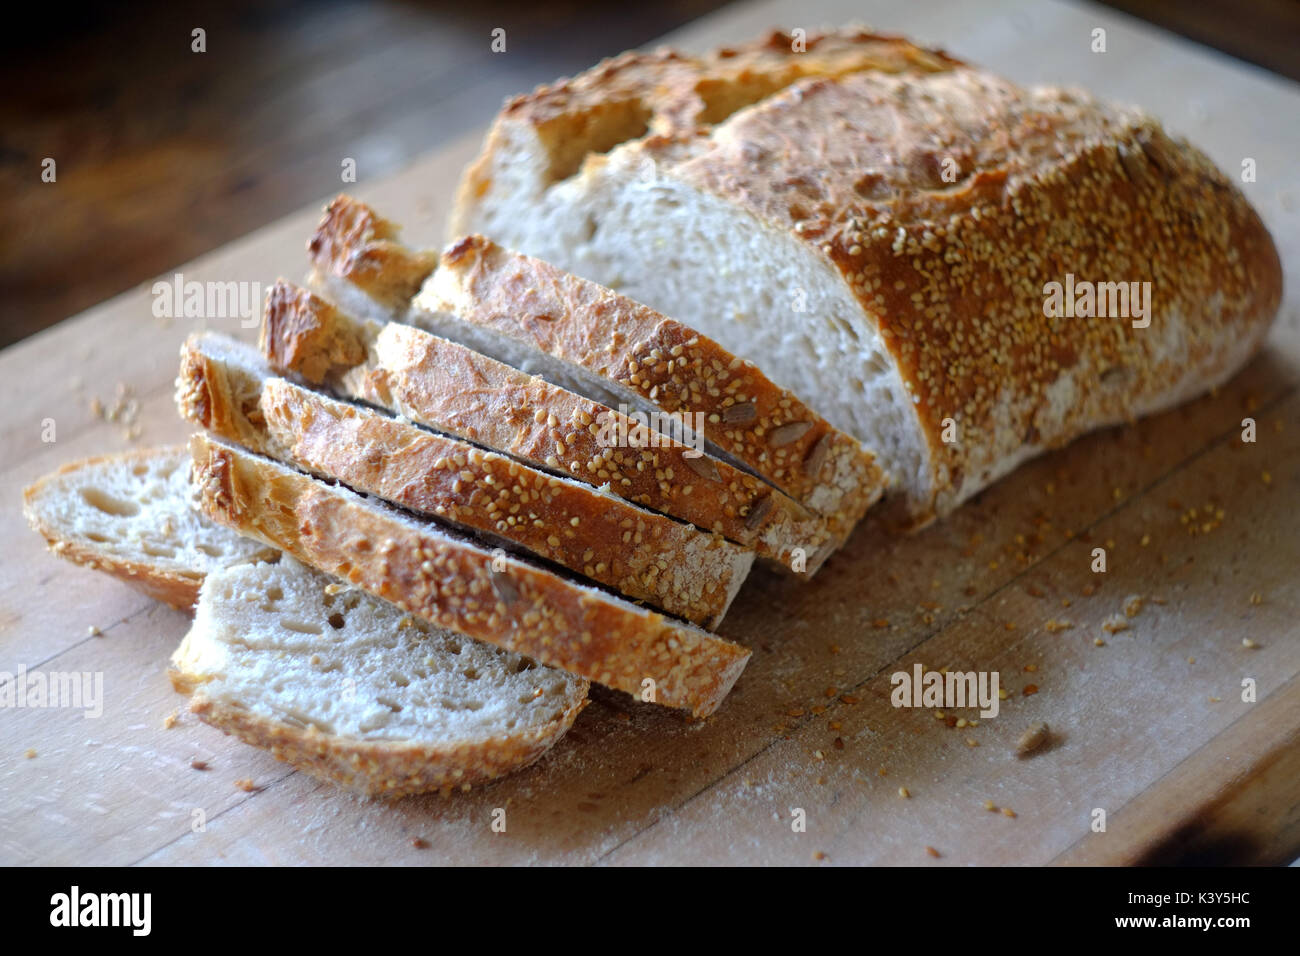 Fresh loaf of artisan bread being sliced on a wooden board. - Stock Image